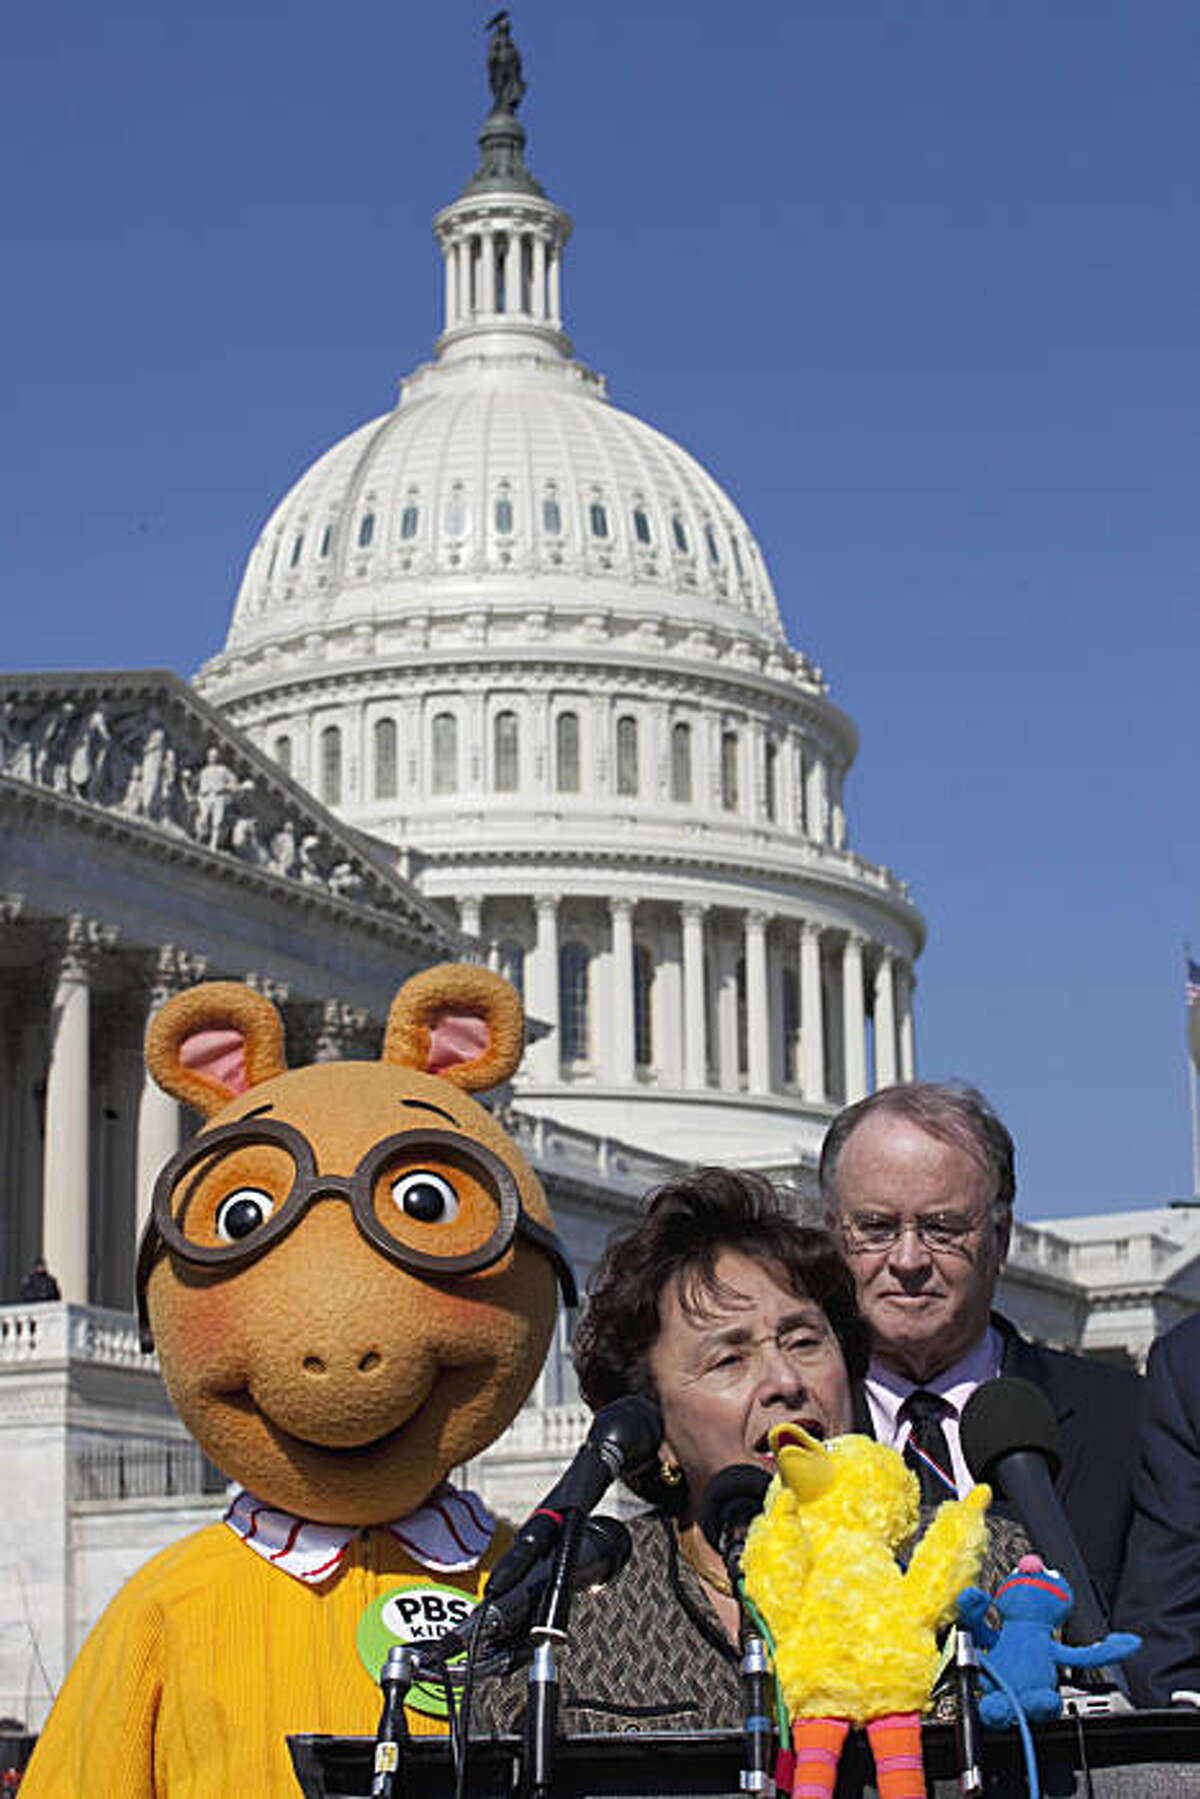 Arthur the Aardvark and Rep. Sam Farr, D-Calif., listen as Rep. Nita Lowey, D. N.Y., speaks during a news conference on Capitol Hill in Washington, Wednesday, Feb. 16, 2011, to discuss the future of Public Broadcasting.